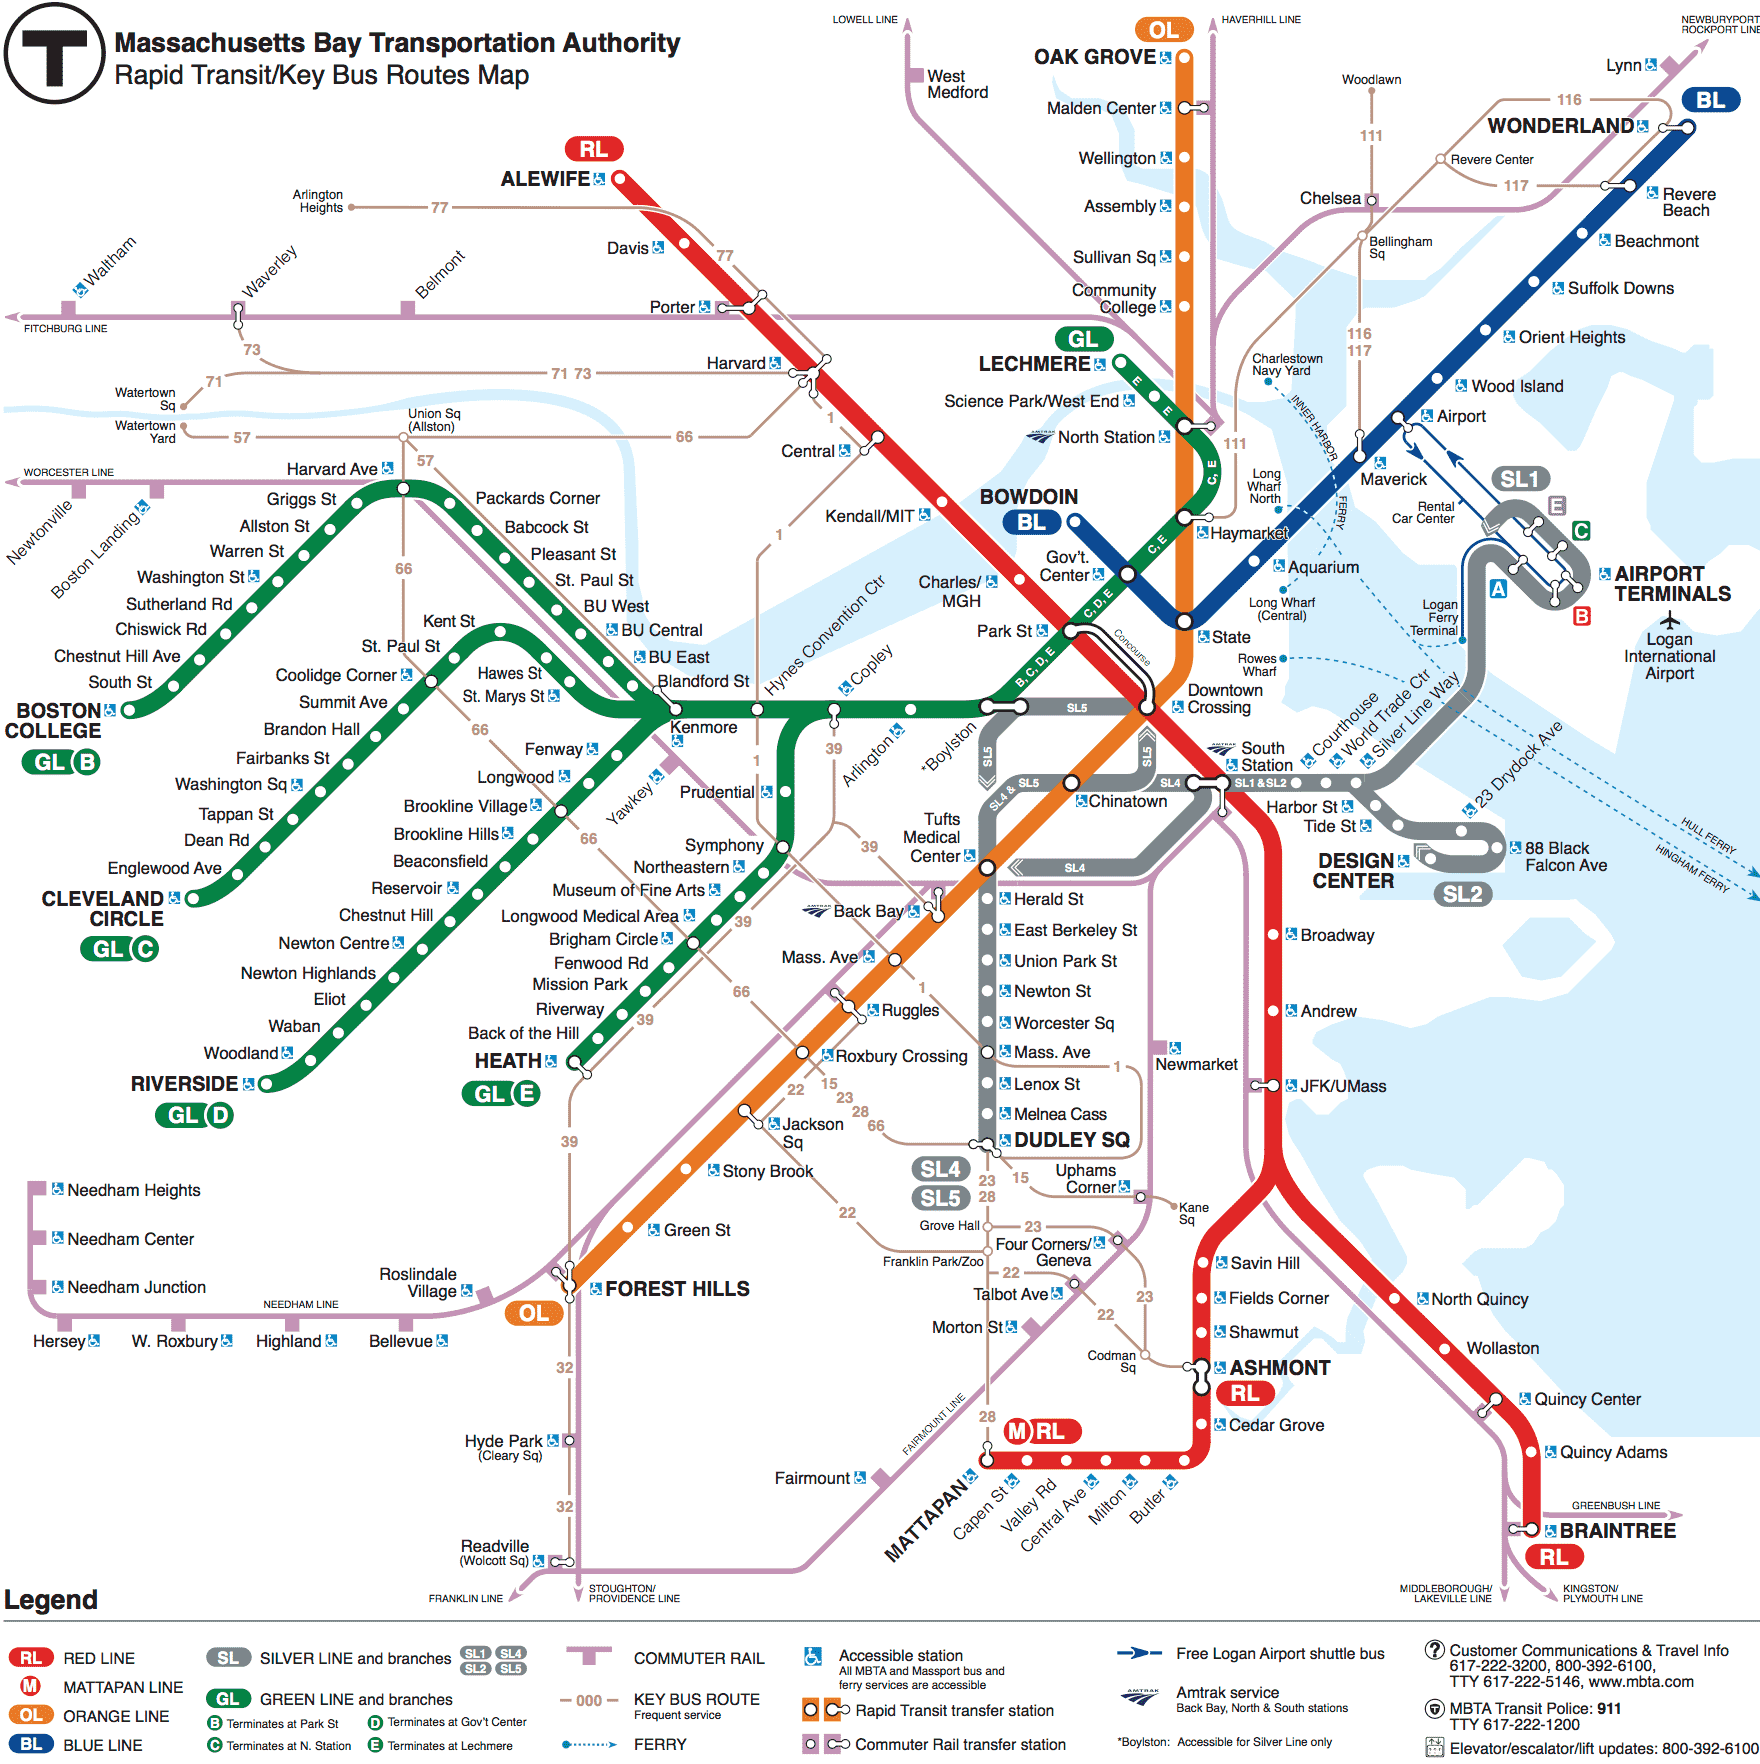 Subway Schedules Maps MBTA Massachusetts Bay - Map images